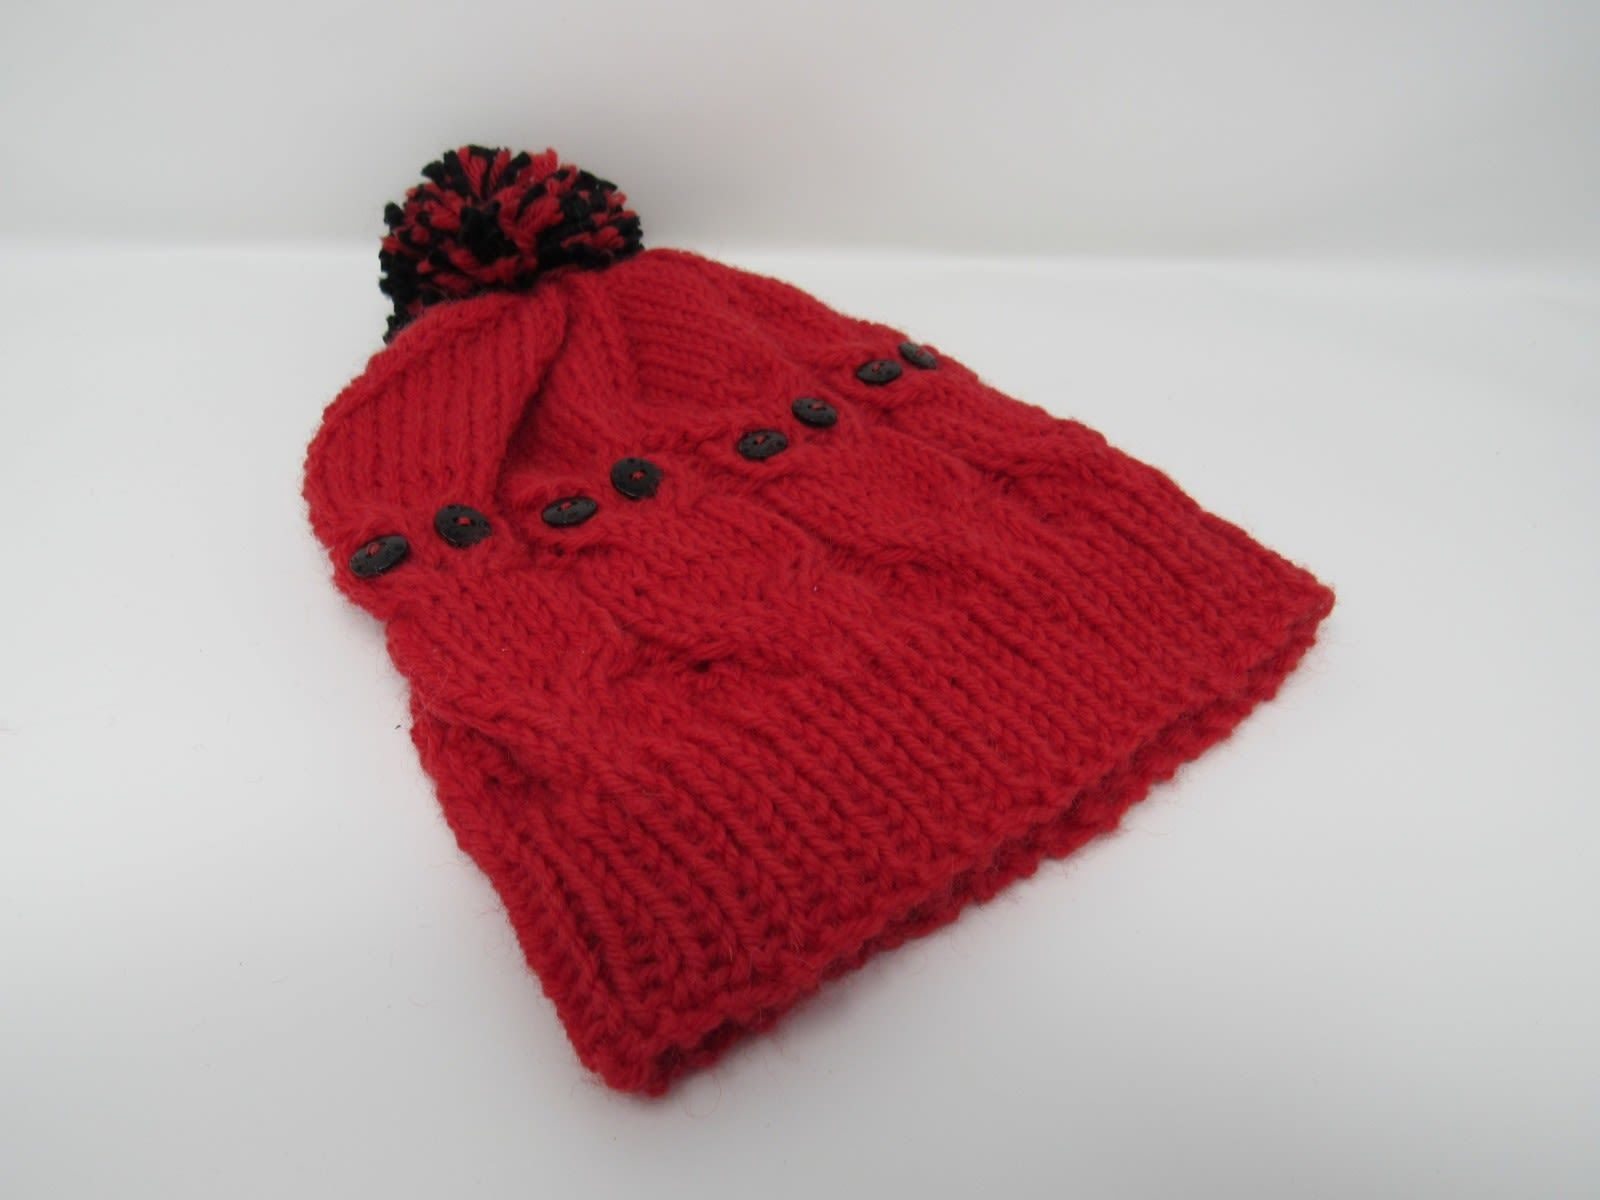 Handcrafted Knitted Hat Red/Black Owl Pom Pom 100% Wool Unisex Kids 4-6